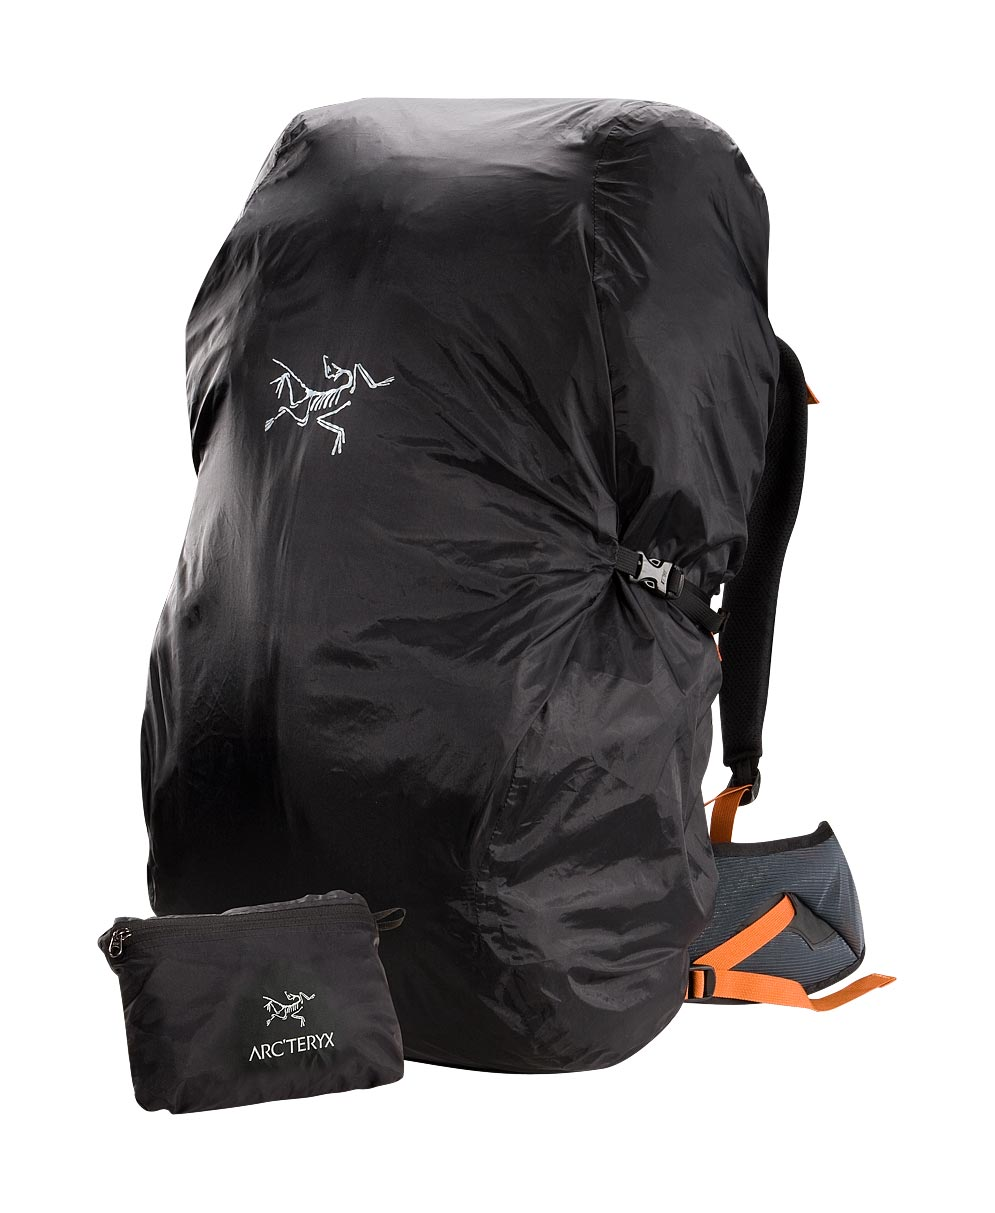 Arcteryx Black Pack Shelter S